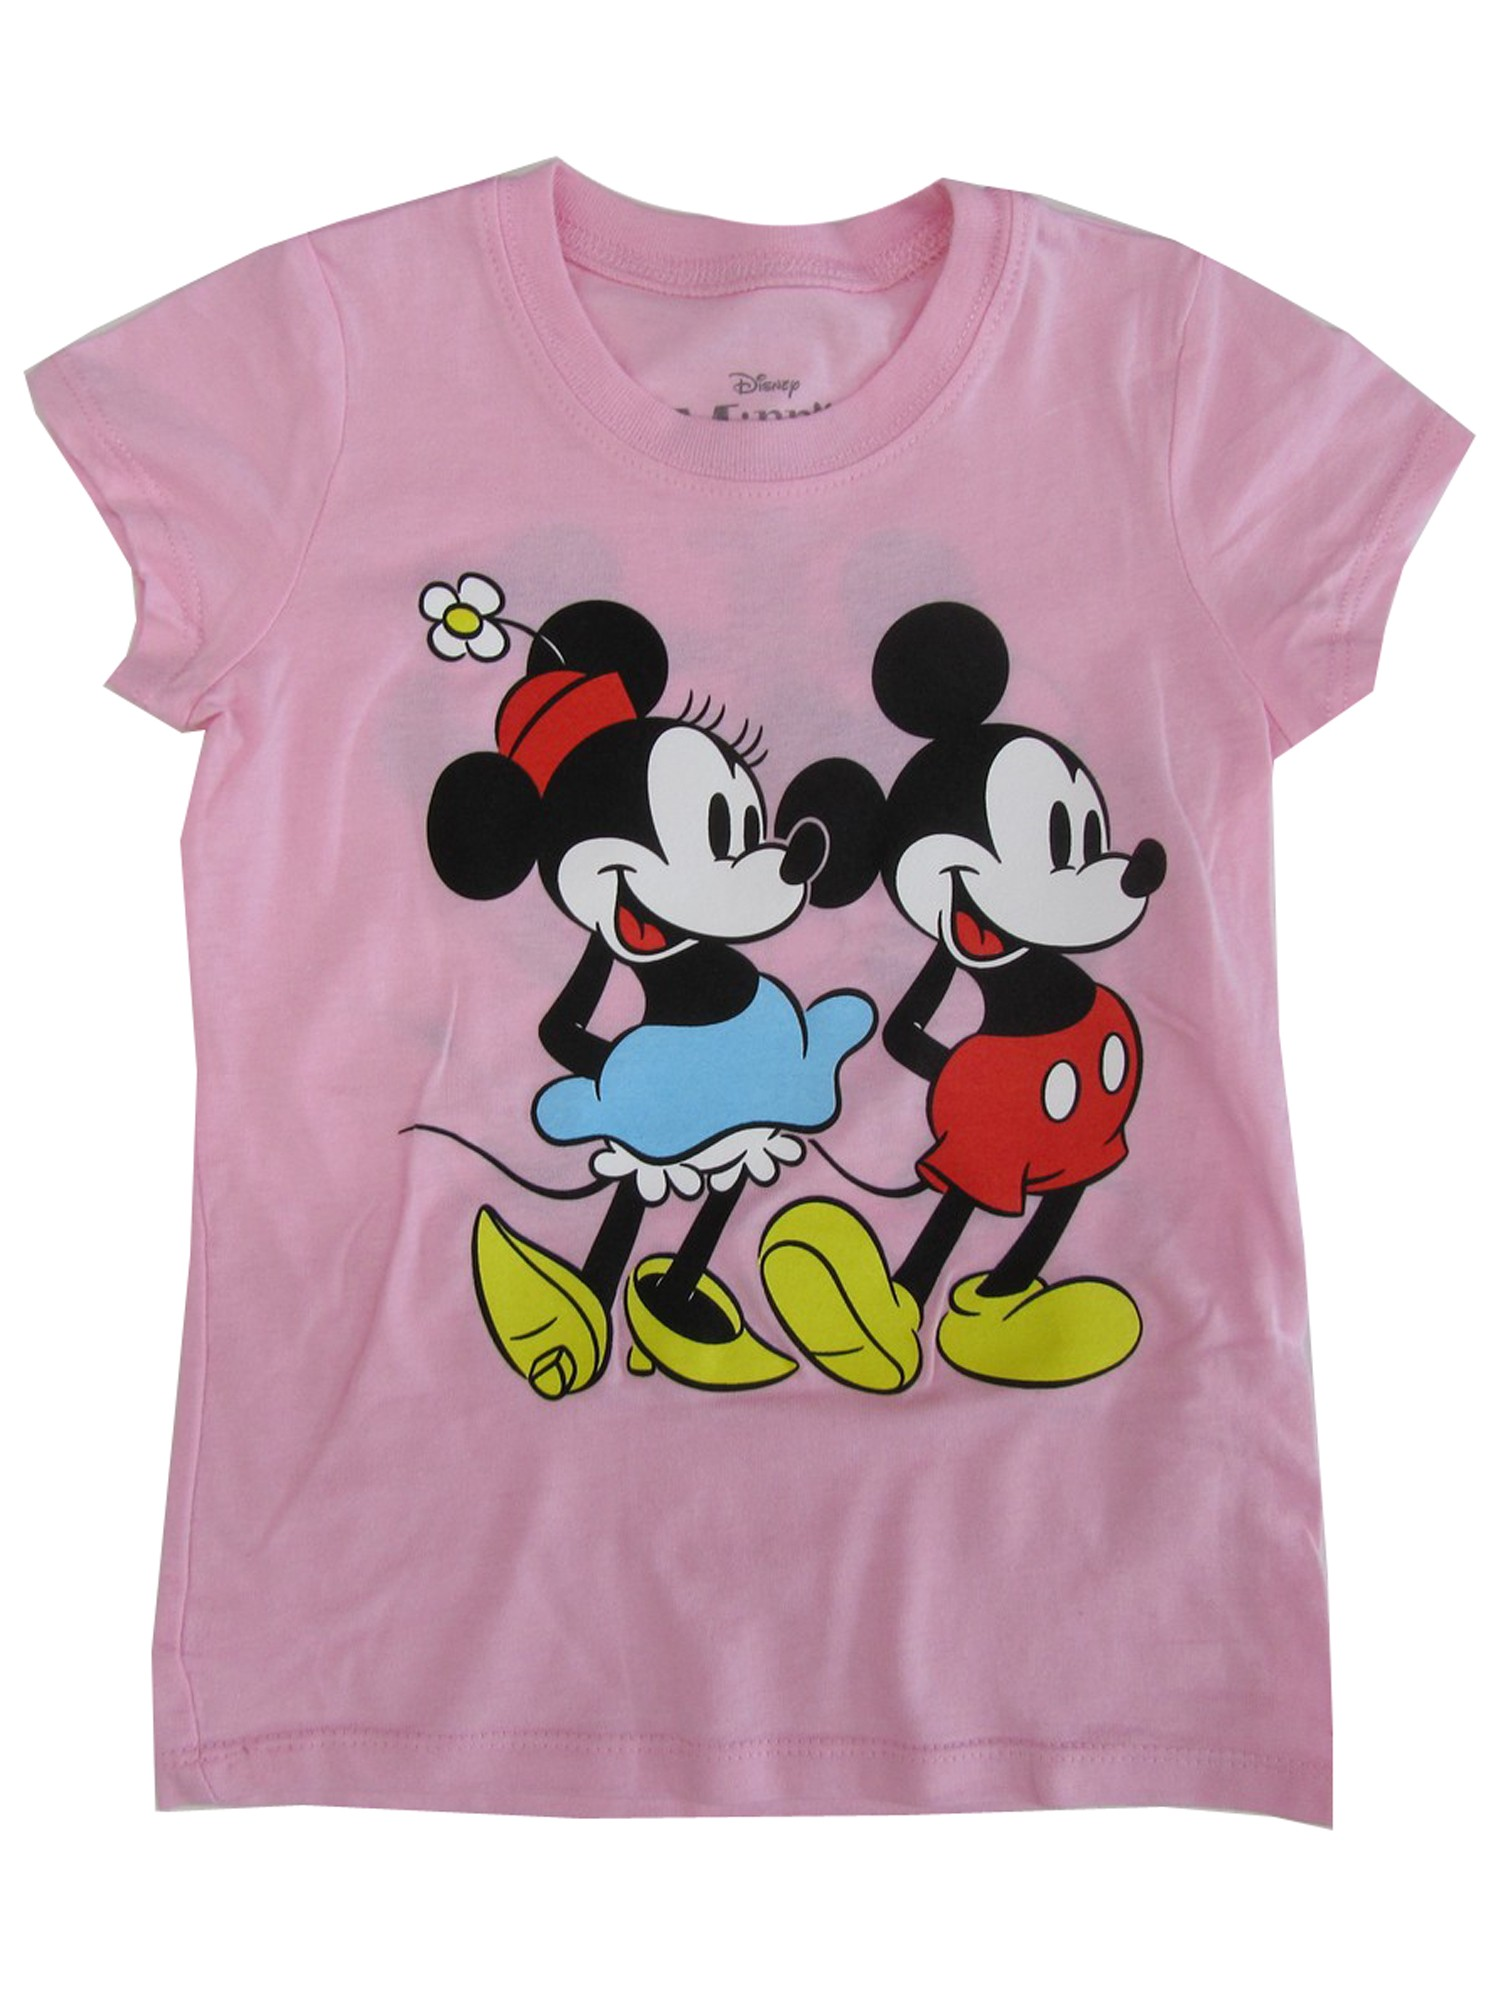 9417833ce2d3d Disney Big Girls Pink Minnie Mickey Mouse Print Short Sleeve T-Shirt 7-16 -  Sophia's Style